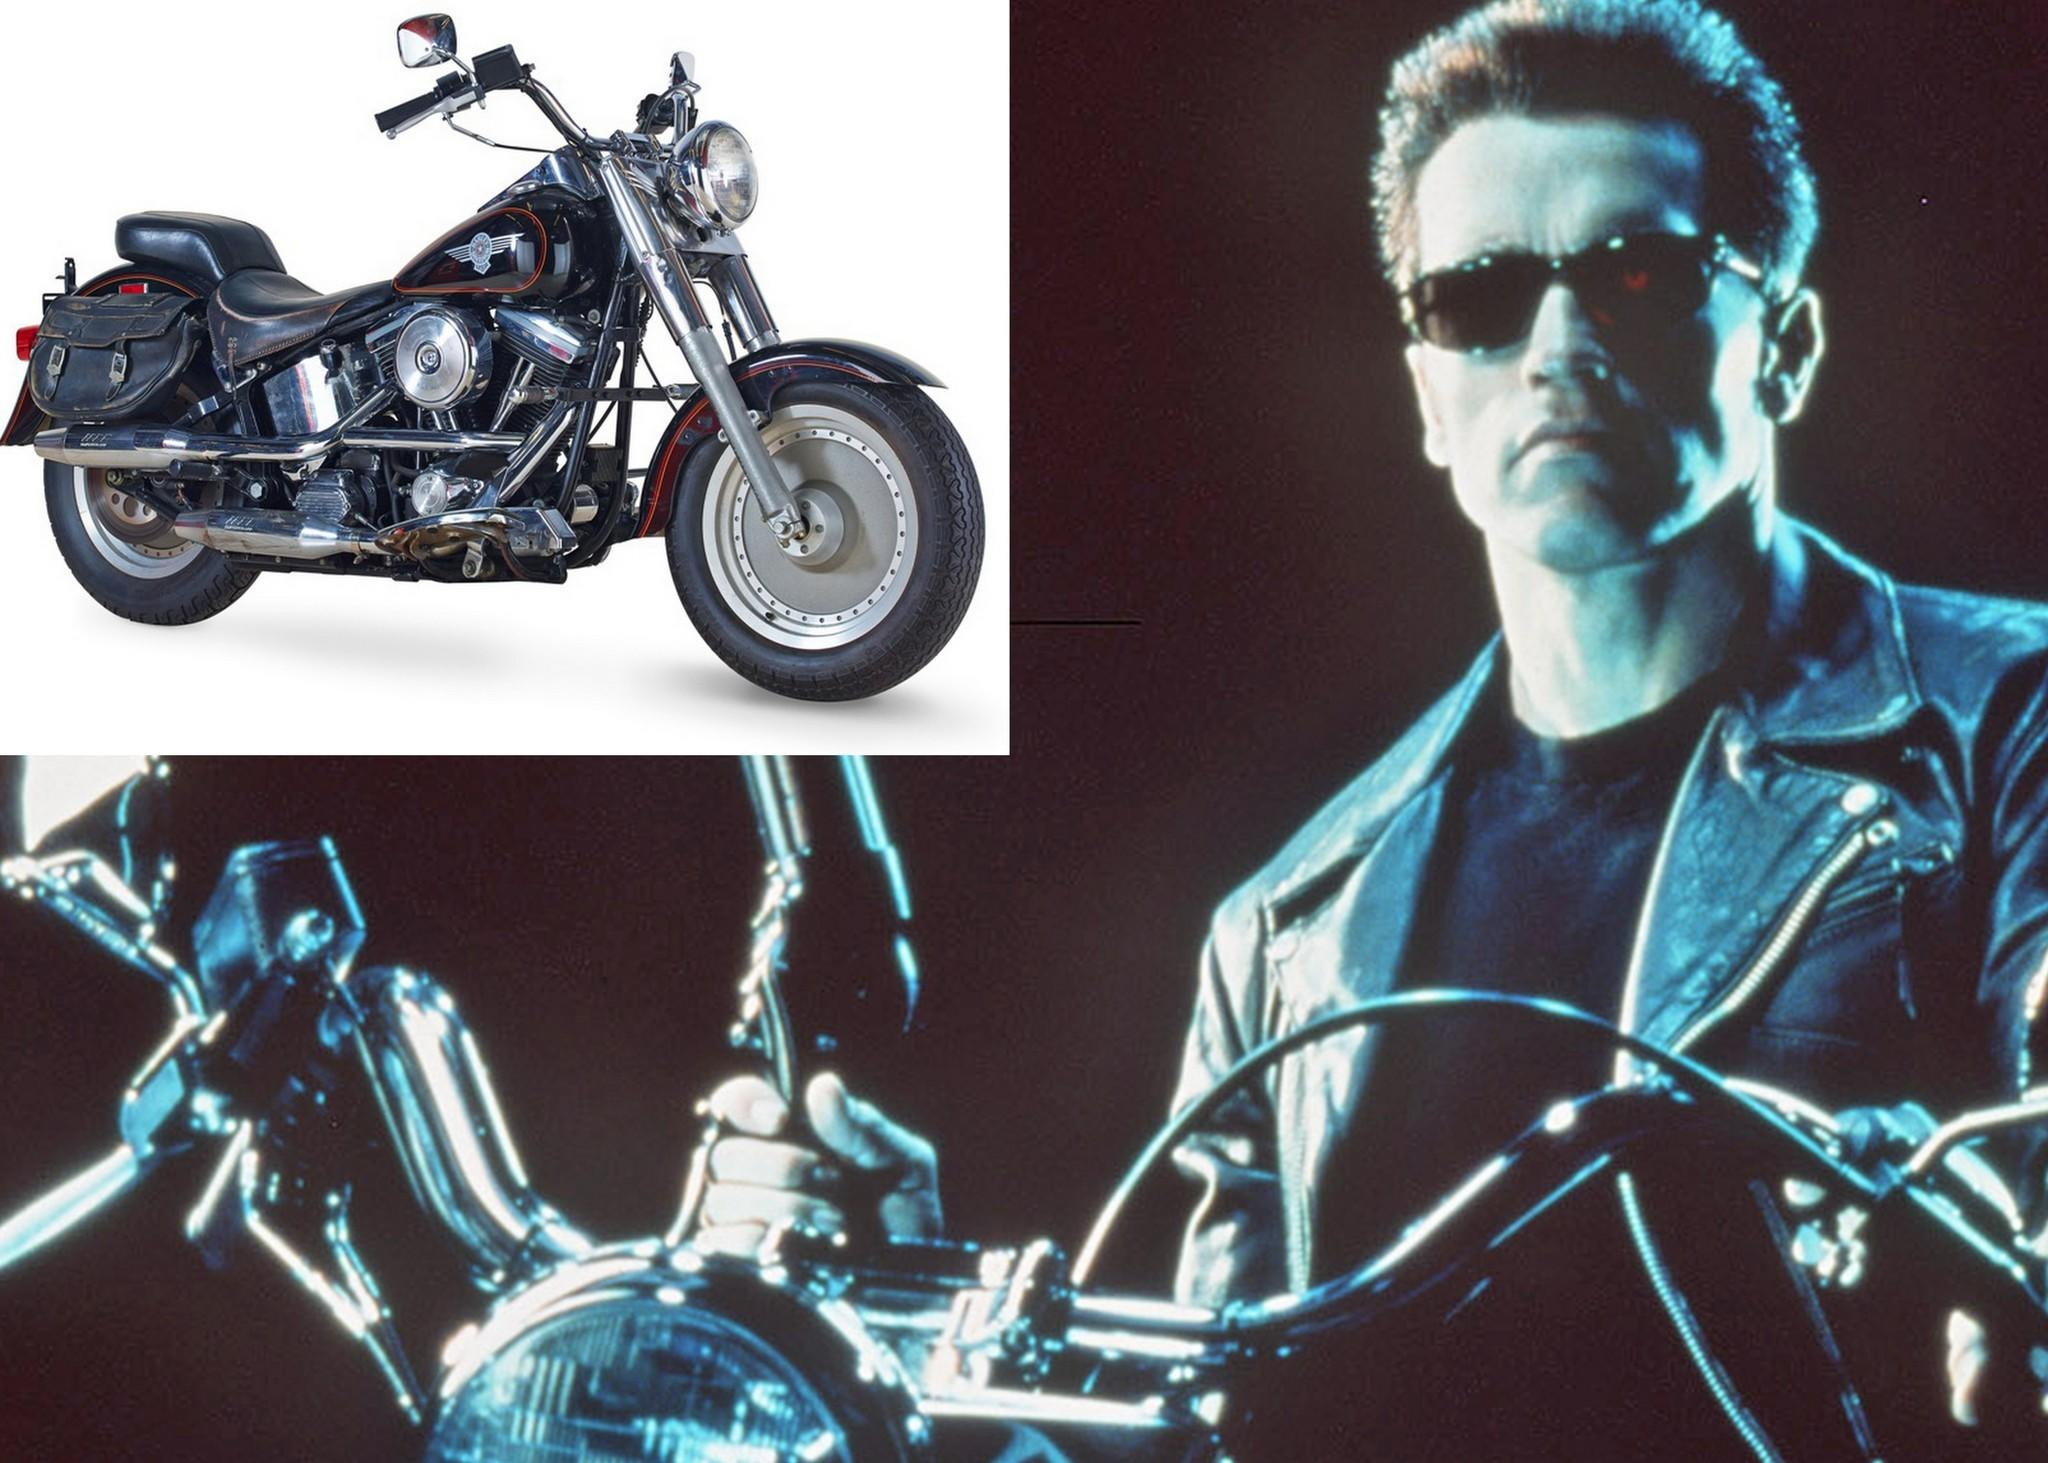 terminator 2' motorcycle, other props stopmilwaukee harley